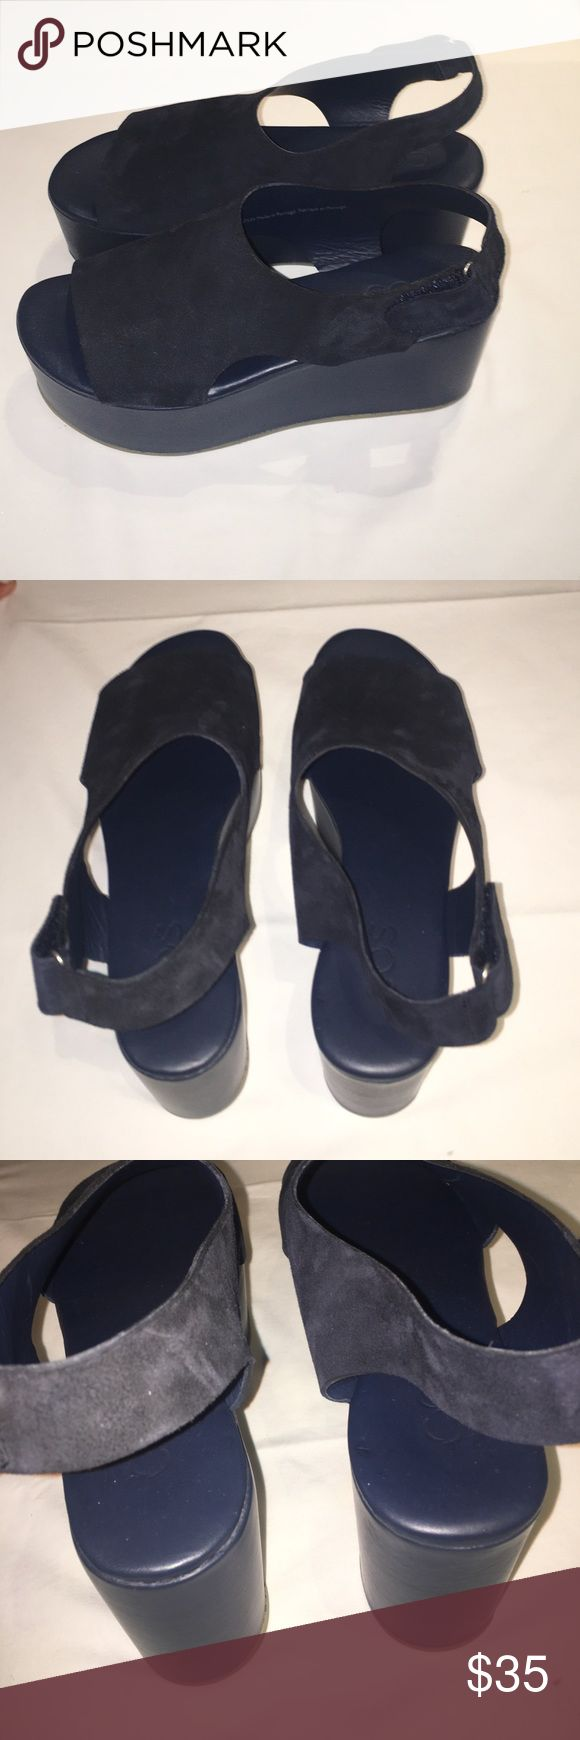 COS Navy Platform shoes Navy Small to Medium height platform shoes. Never been worn. COS Shoes Platforms